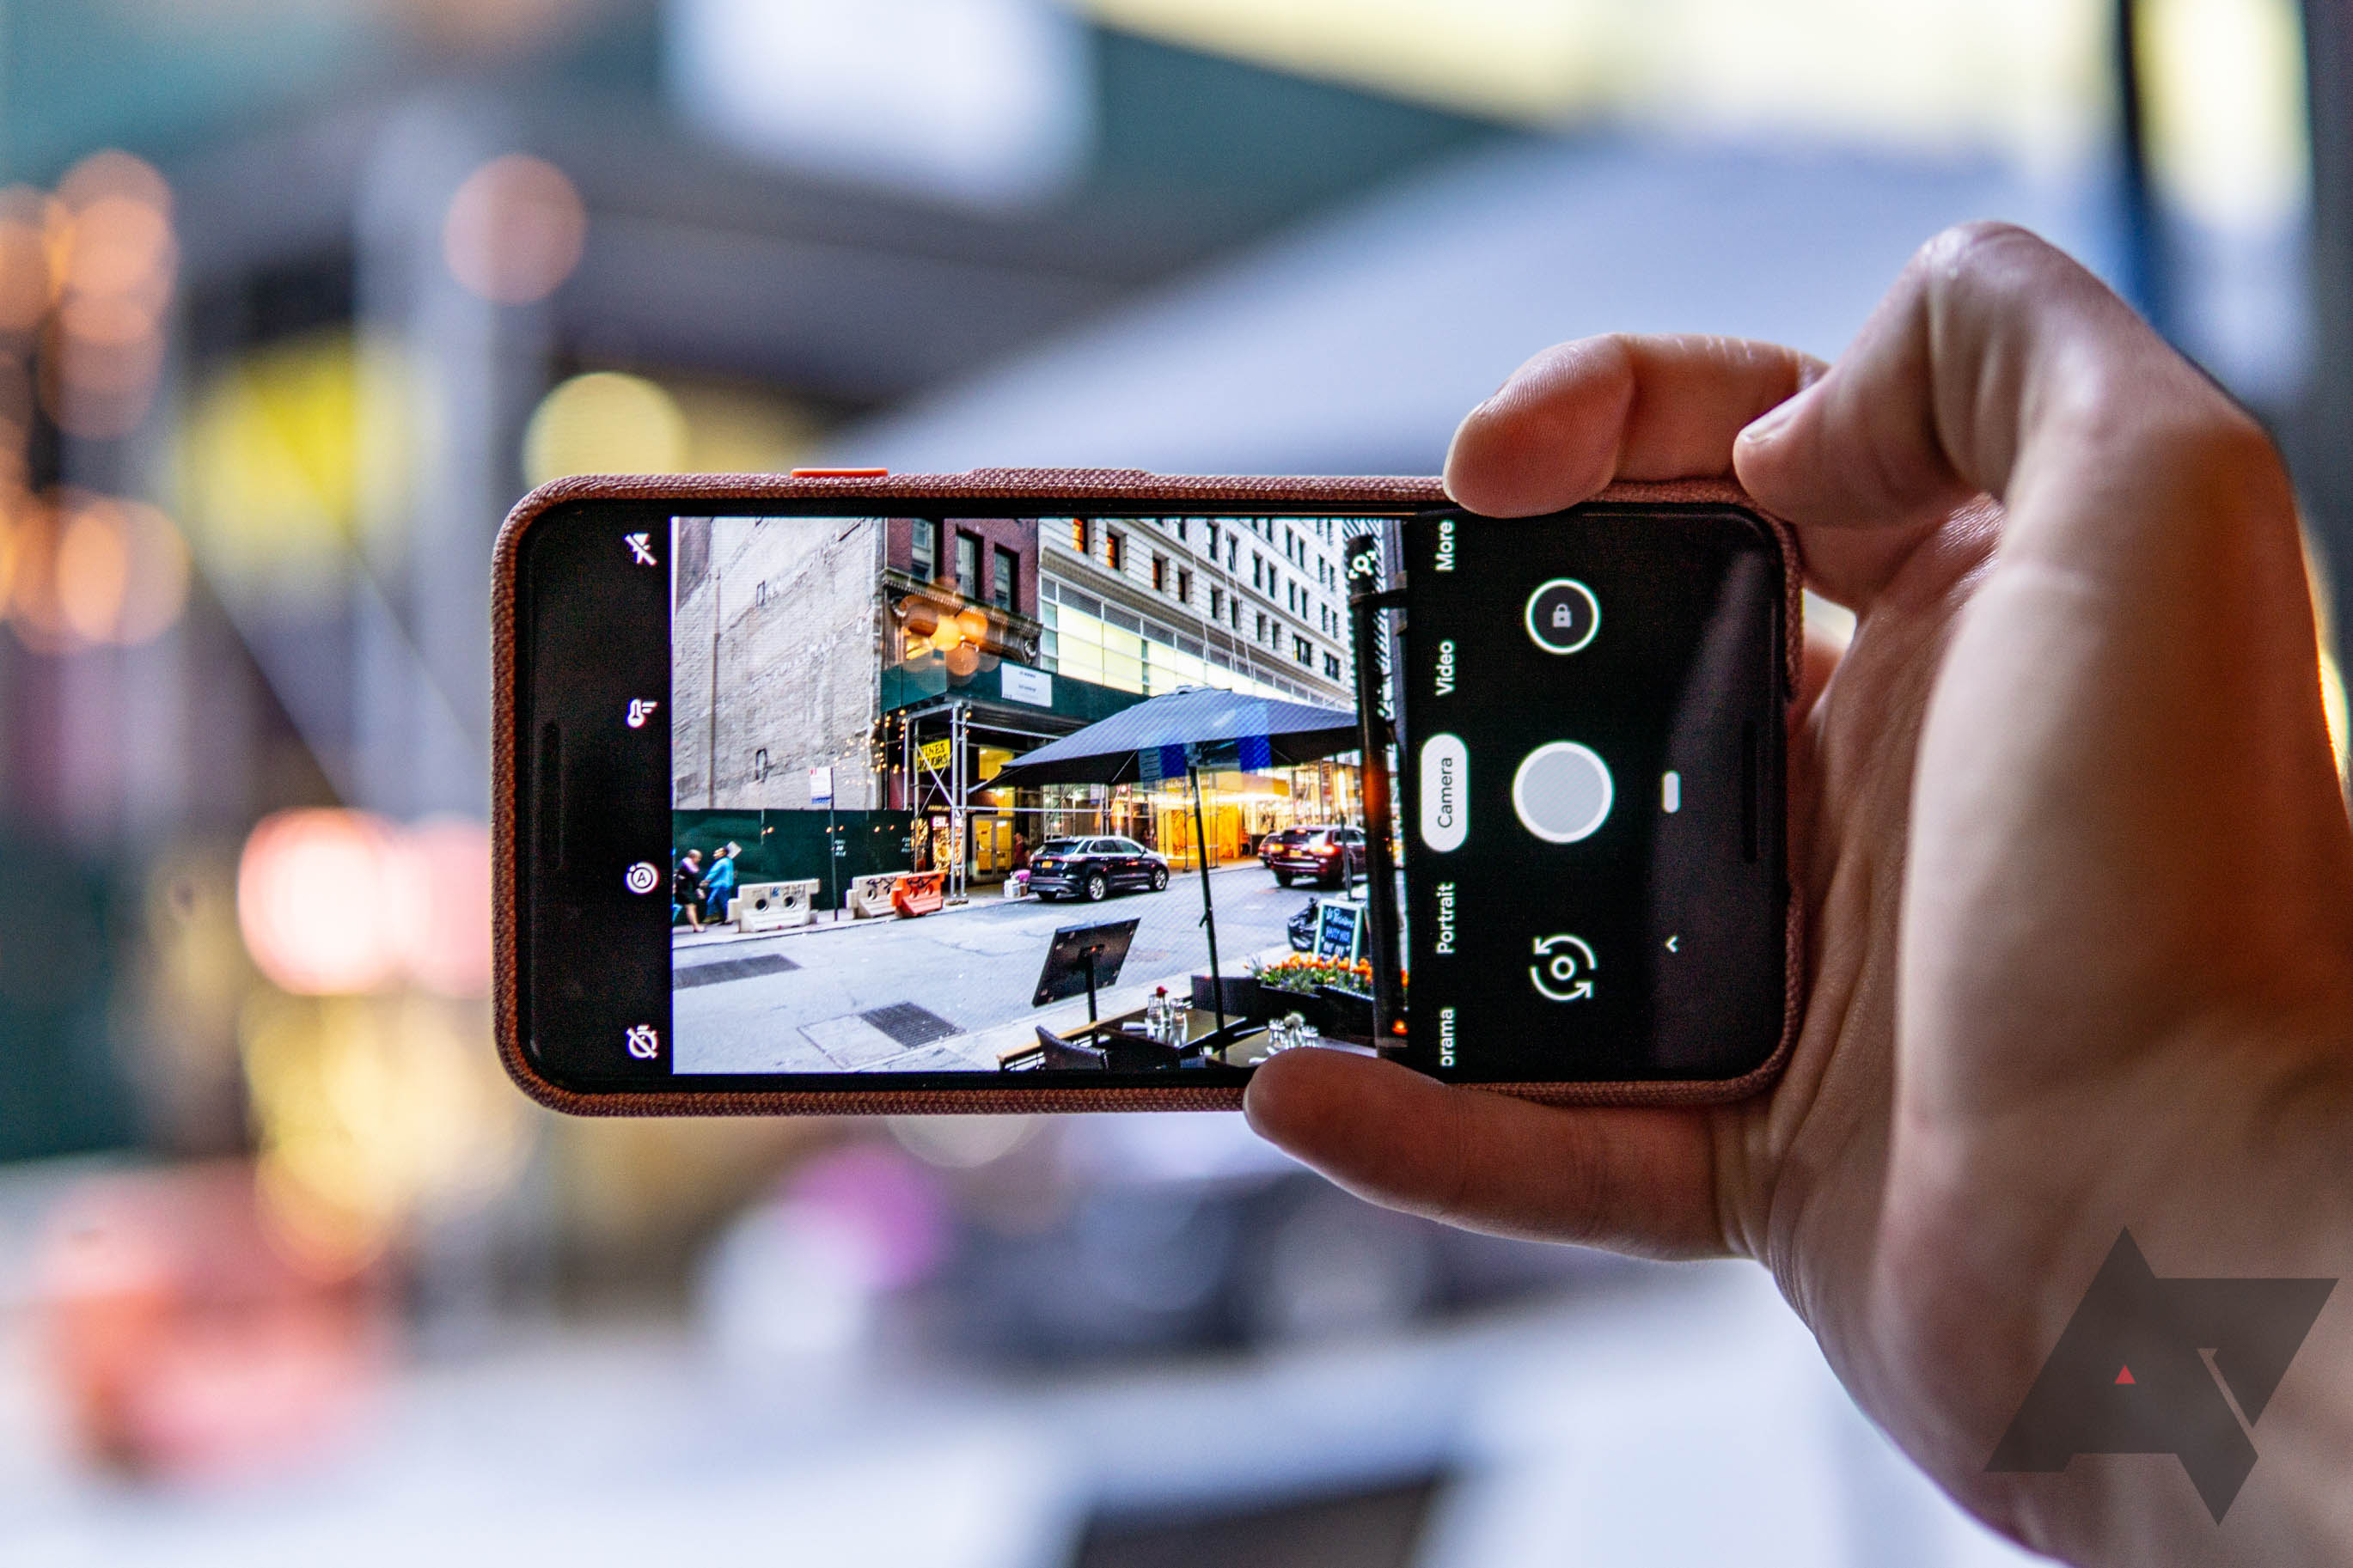 Pixel 3 March OTA update may speed up the terribly slow camera